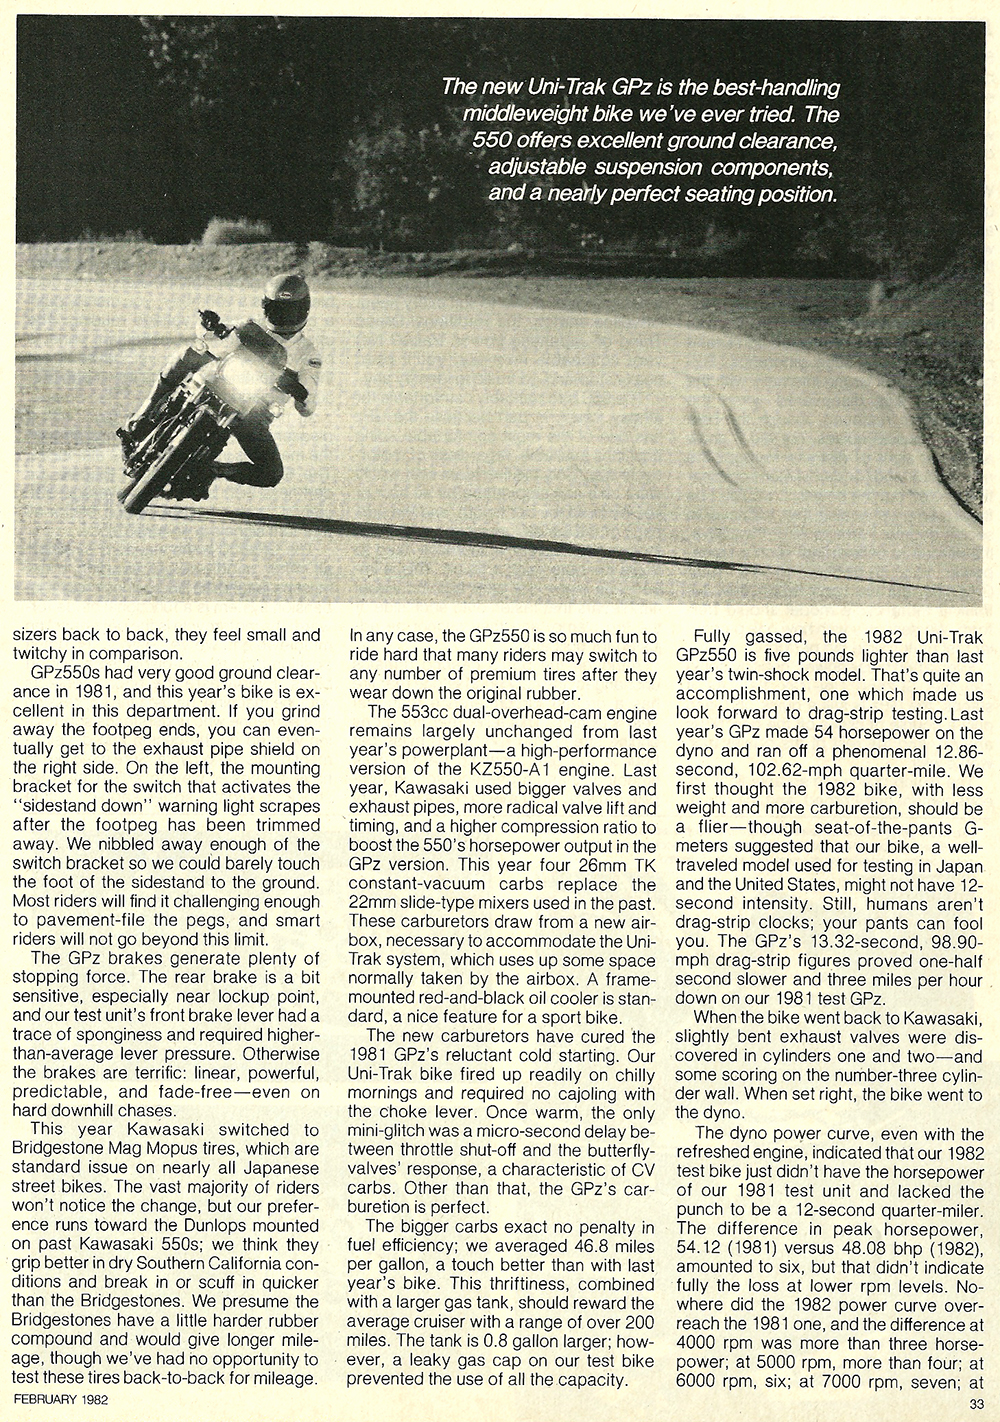 1982 Kawasaki GPz550 road test 06.jpg